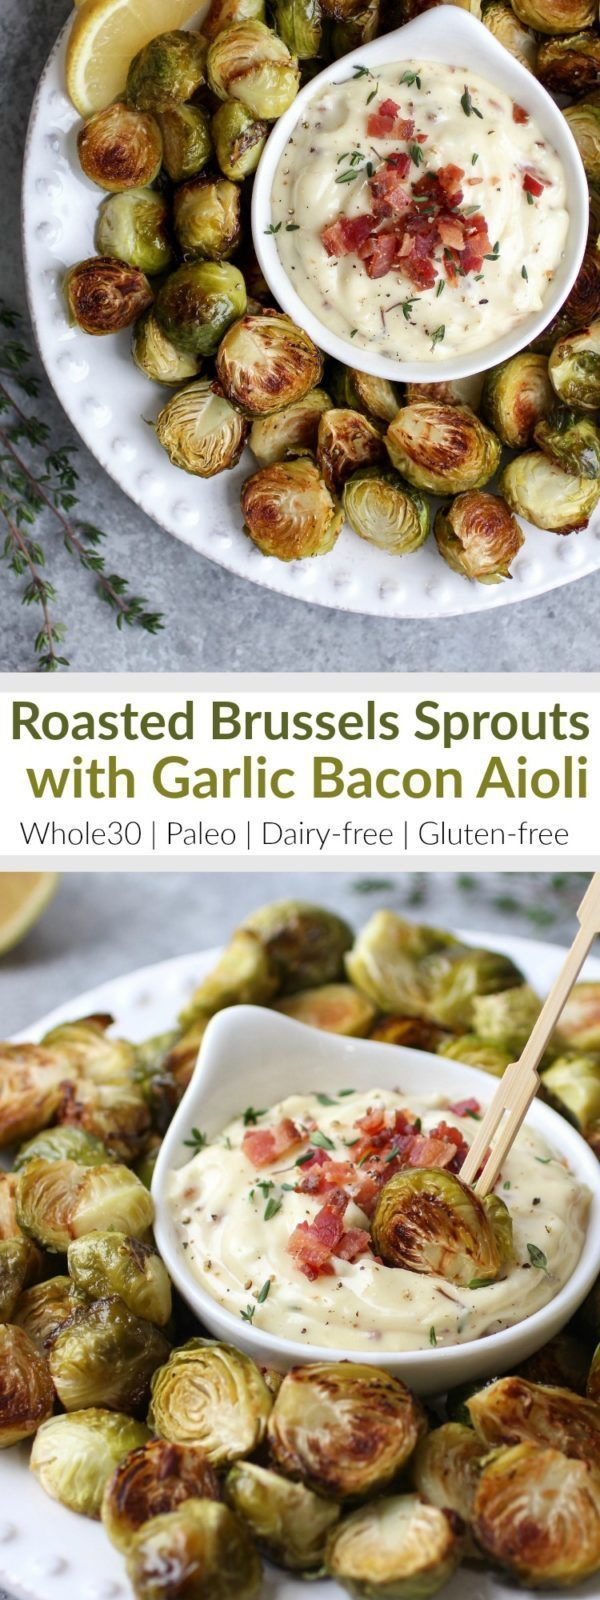 Add these healthy Roasted Brussels Sprouts with Garlic Bacon Aioli to your Holiday party menu or serve them as a delicious Whole30-friendly side-dish | Whole30 | Paleo | Dairy-free | Gluten-free | http://therealfoodrds.com